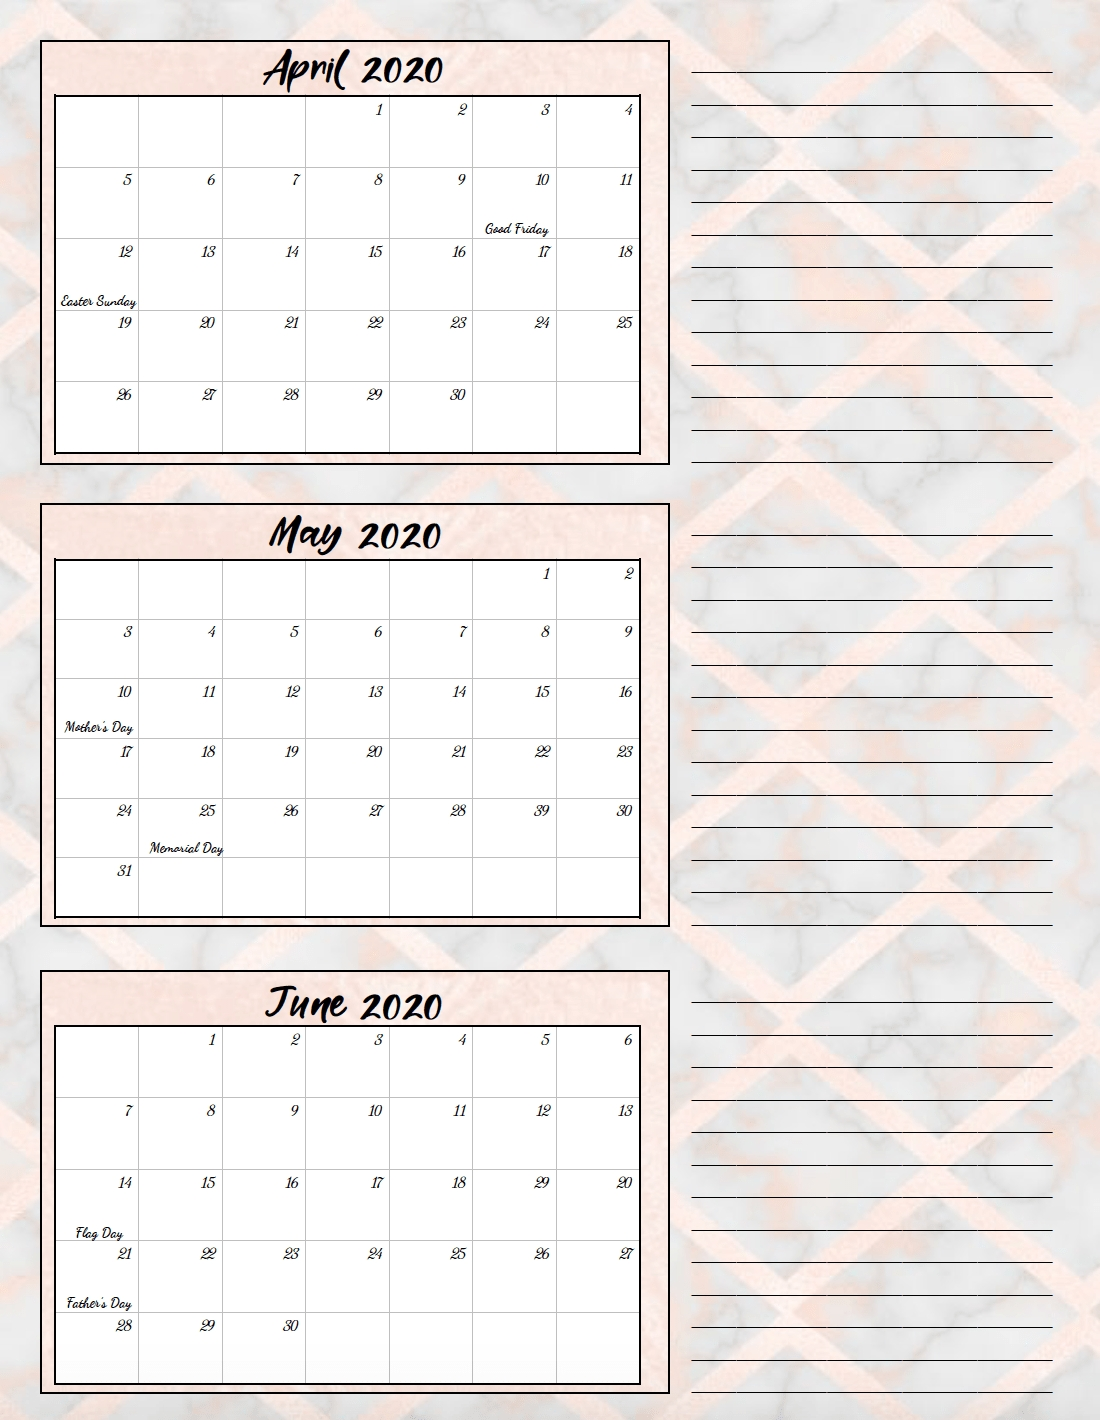 Free Printable 2020 Quarterly Calendars With Holidays: 3 Designs